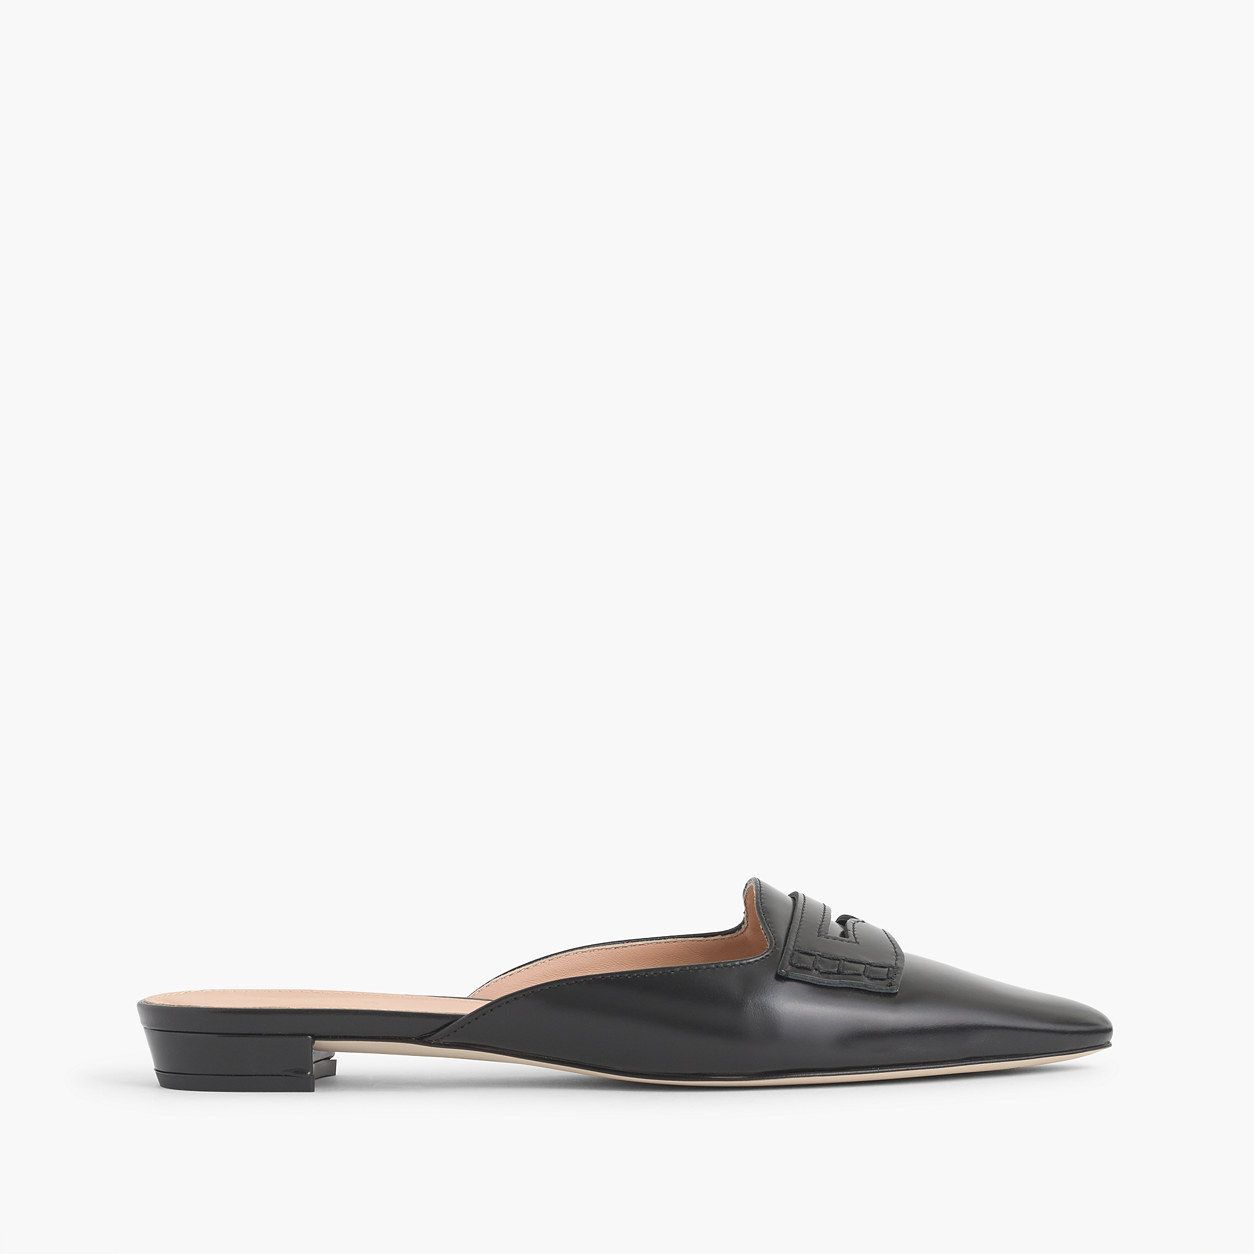 08b2fa69323 Academy Loafers In Calf Hair